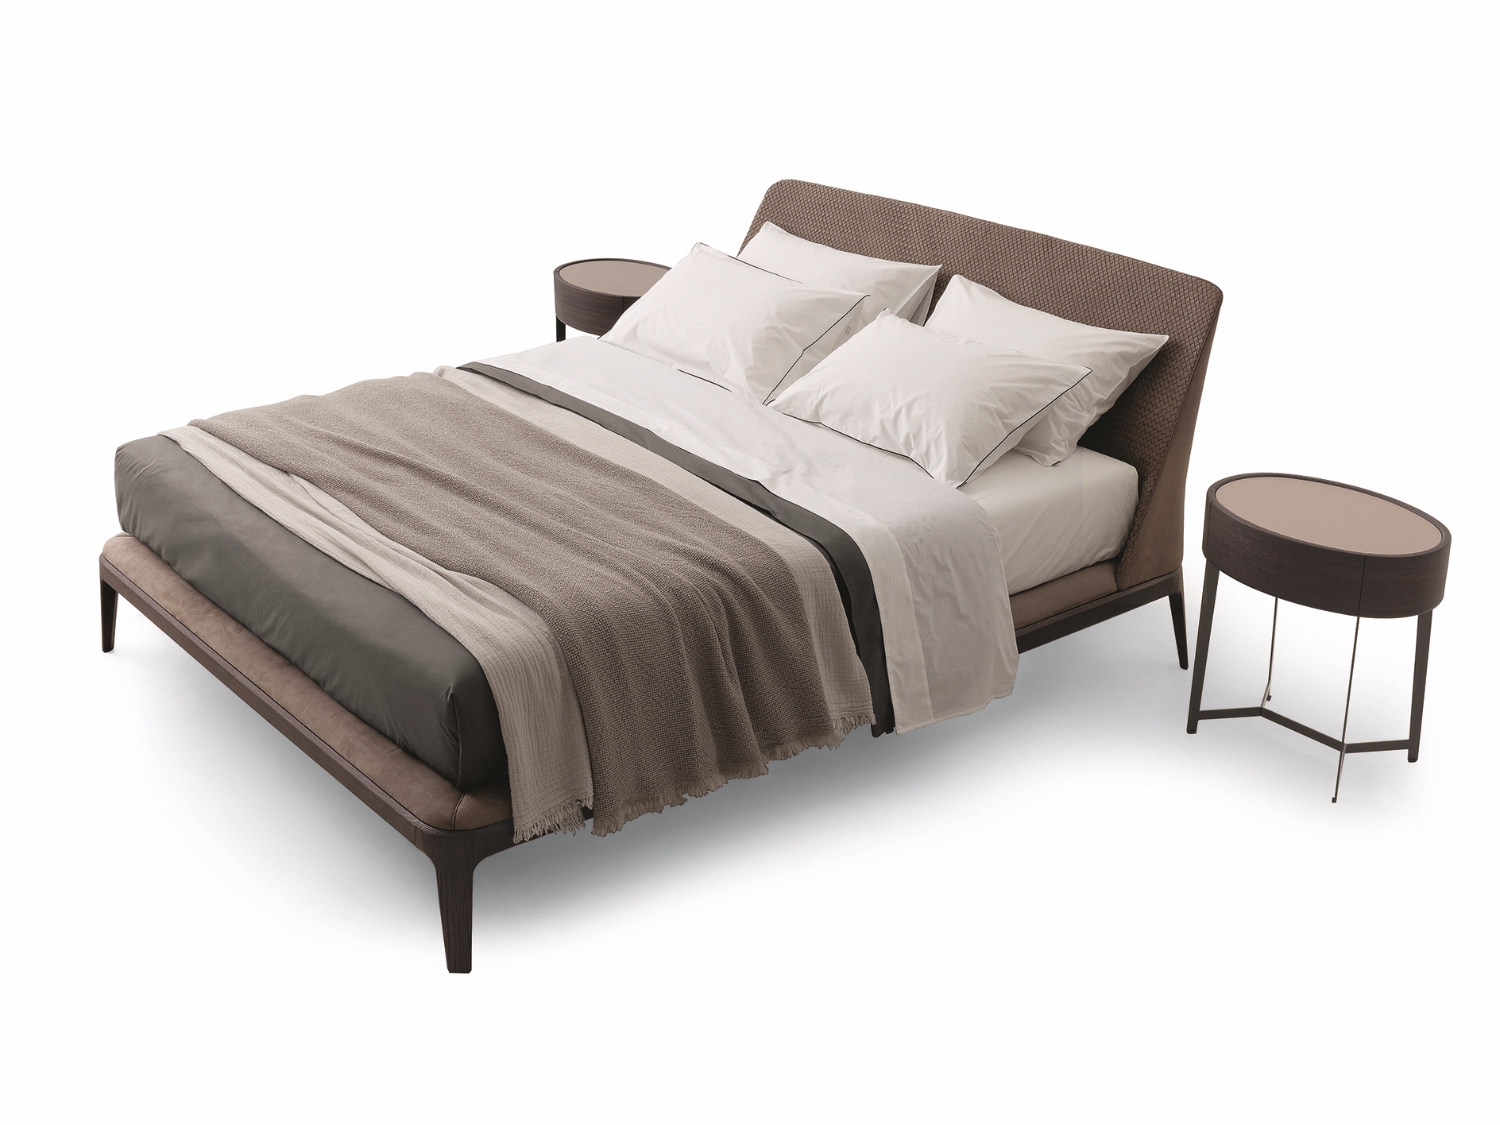 Kelly Poliform Beds